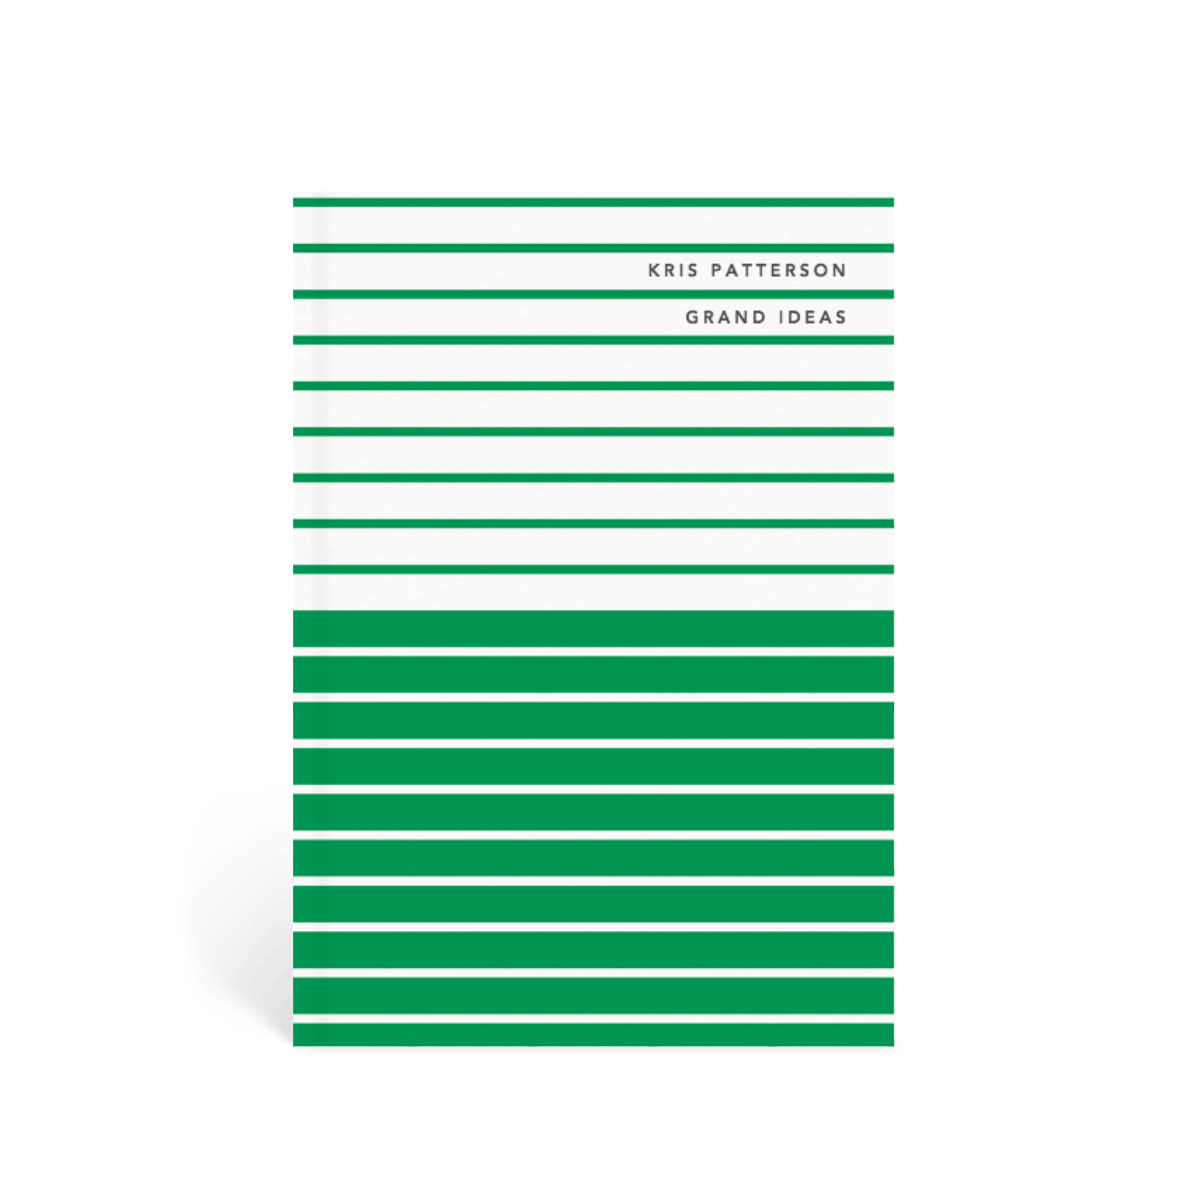 Https%3a%2f%2fwww.papier.com%2fproduct image%2f51005%2f25%2fdouble stripe 12488 front 1540308589.png?ixlib=rb 1.1